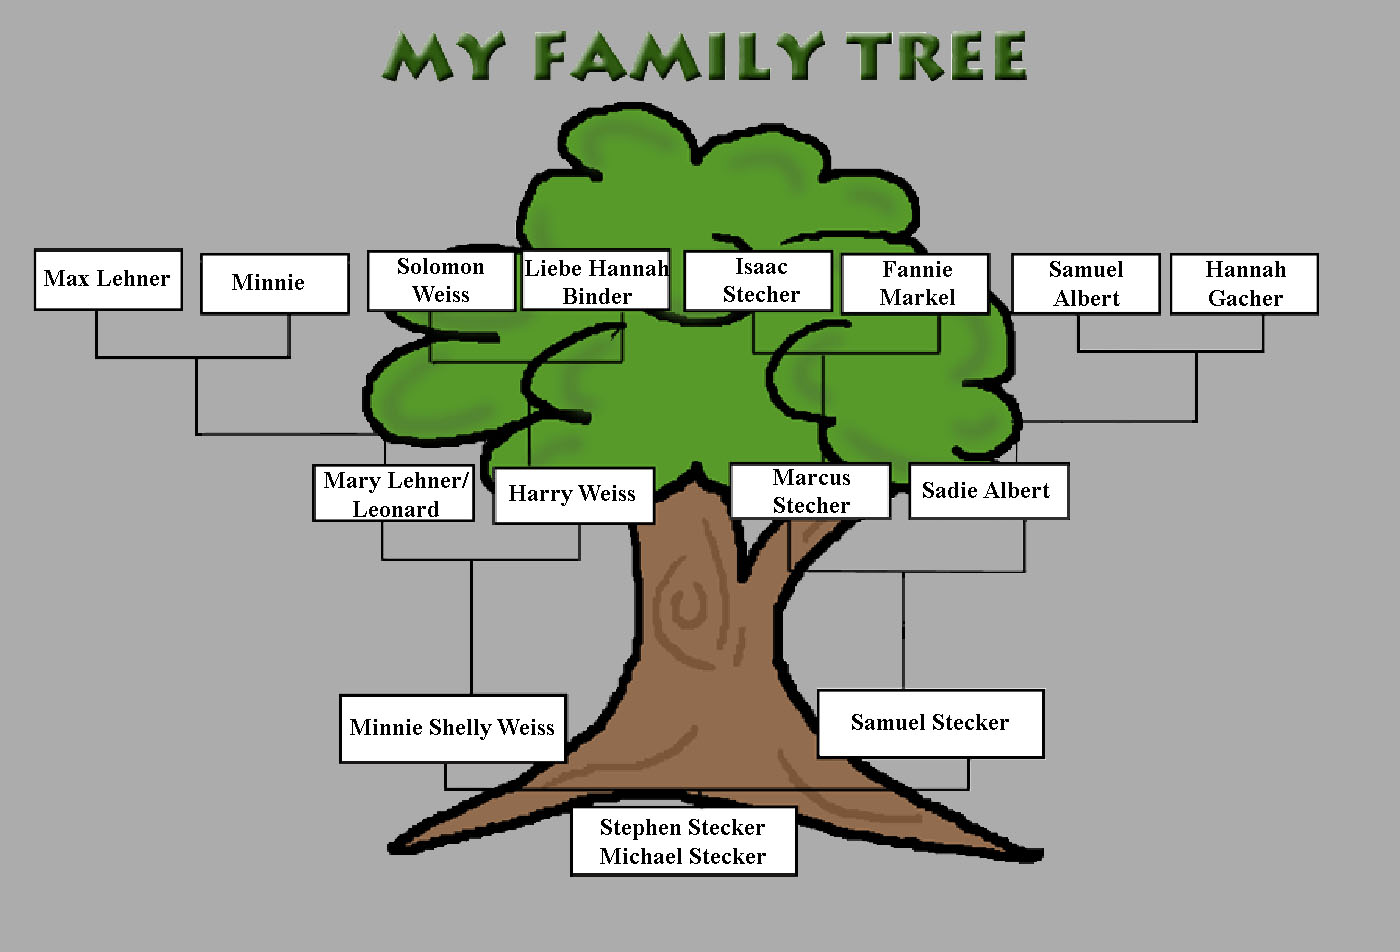 Family Tree Images   Wallpaper HD Wide 1400x952